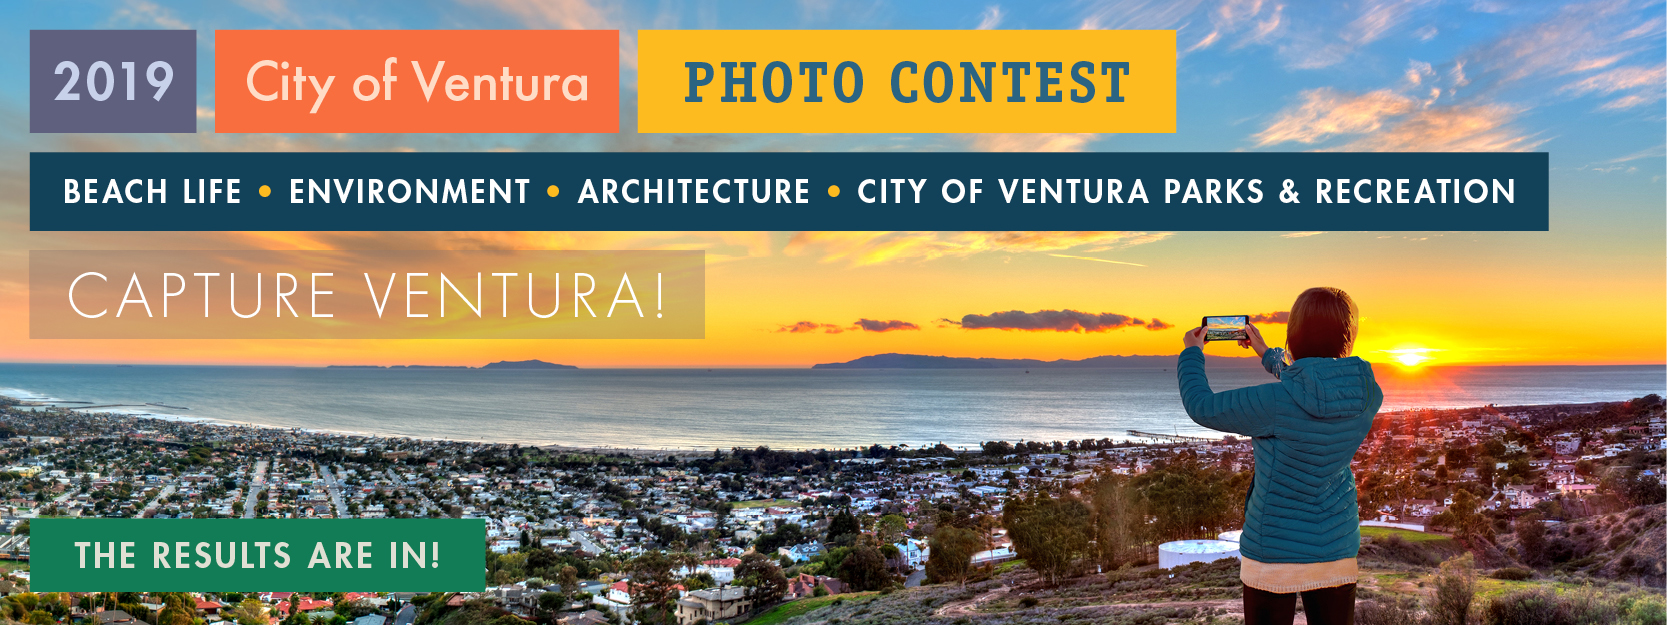 2019-Photo-Contest-WEBSITE-HEADER